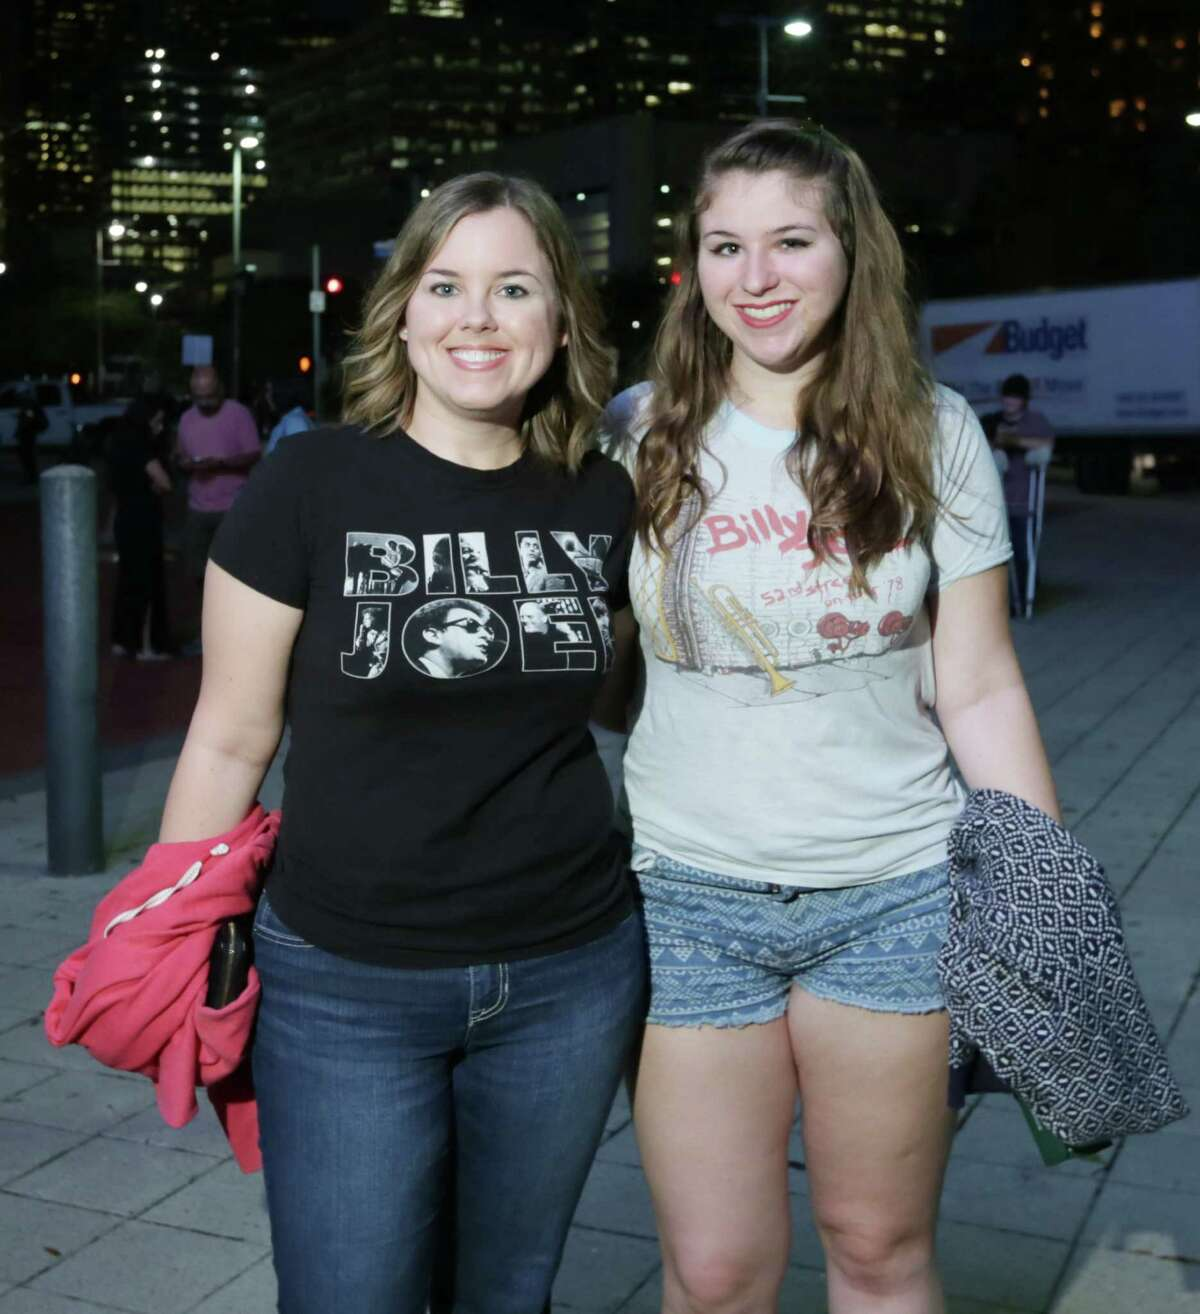 People pose for a photo before the Billy Joel concert at the Toyota Center Friday, Nov. 6, 2015, in Houston.